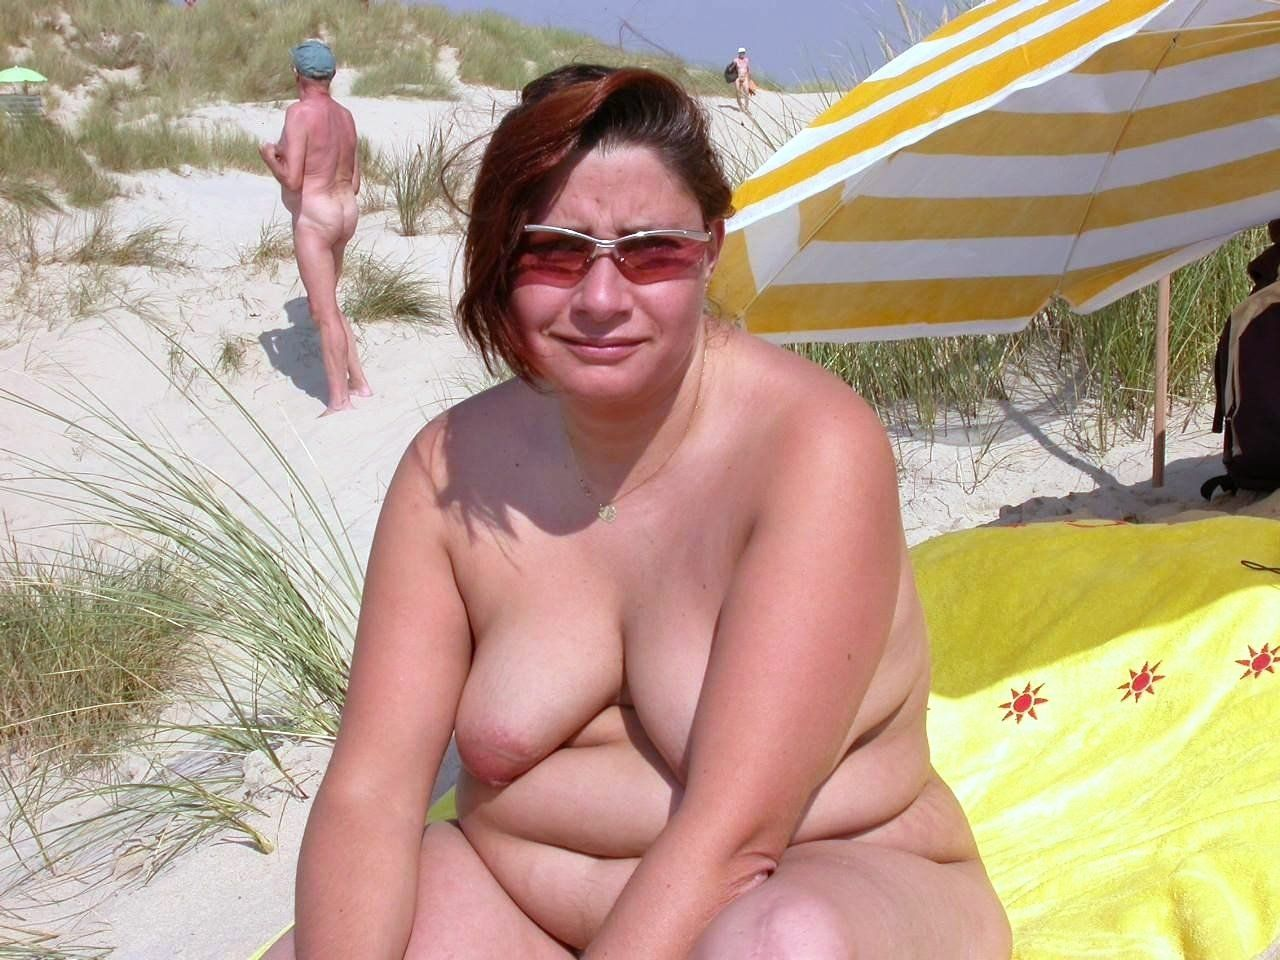 All Over 50 Nude Pics chubby nude beaches . porn images. comments: 1